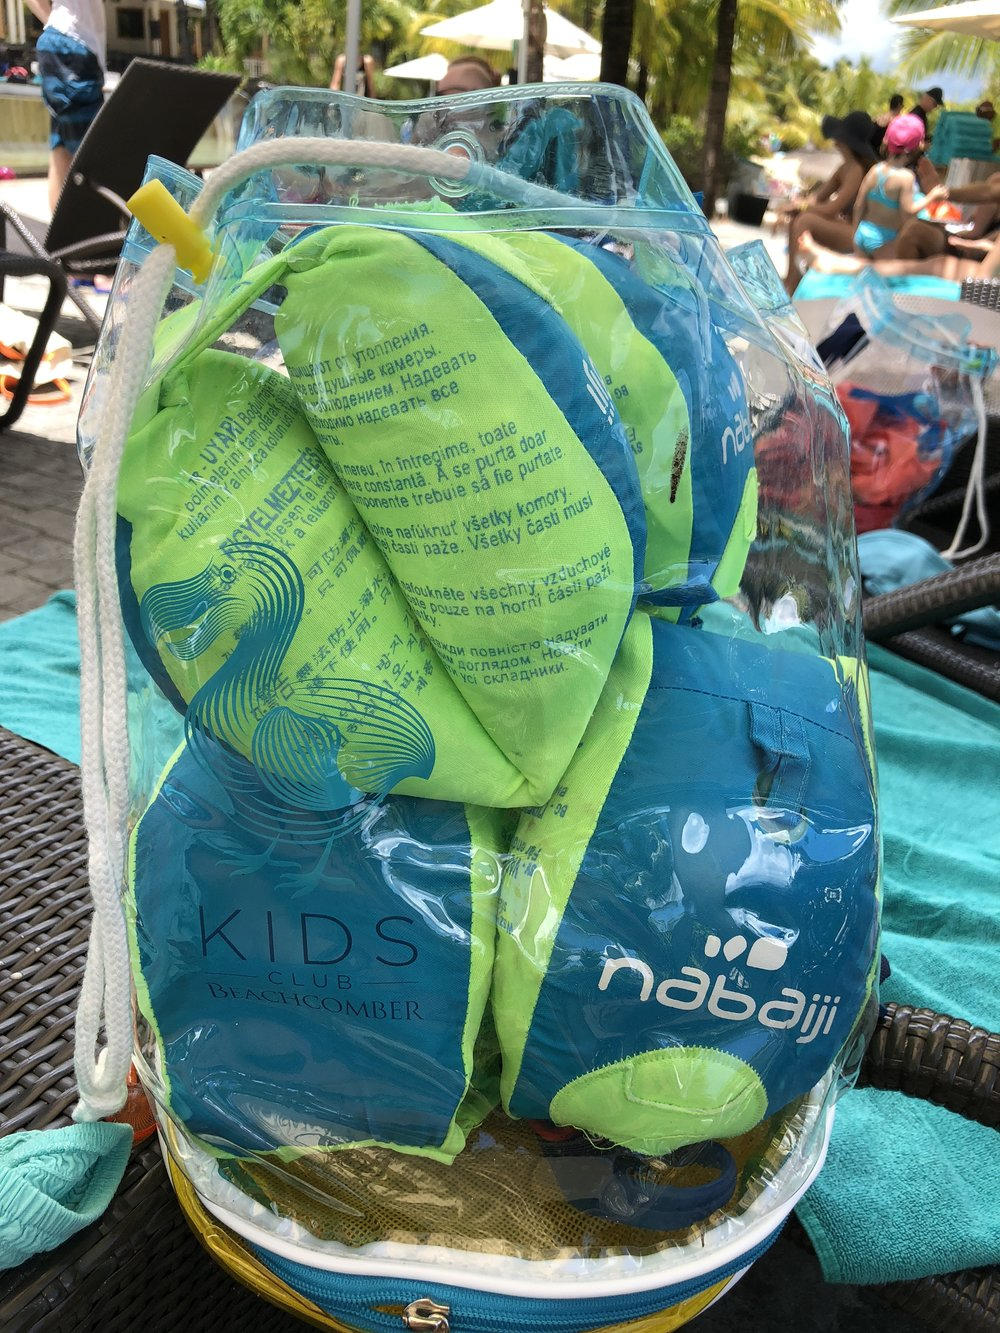 Awesome kids club bag provided for each child